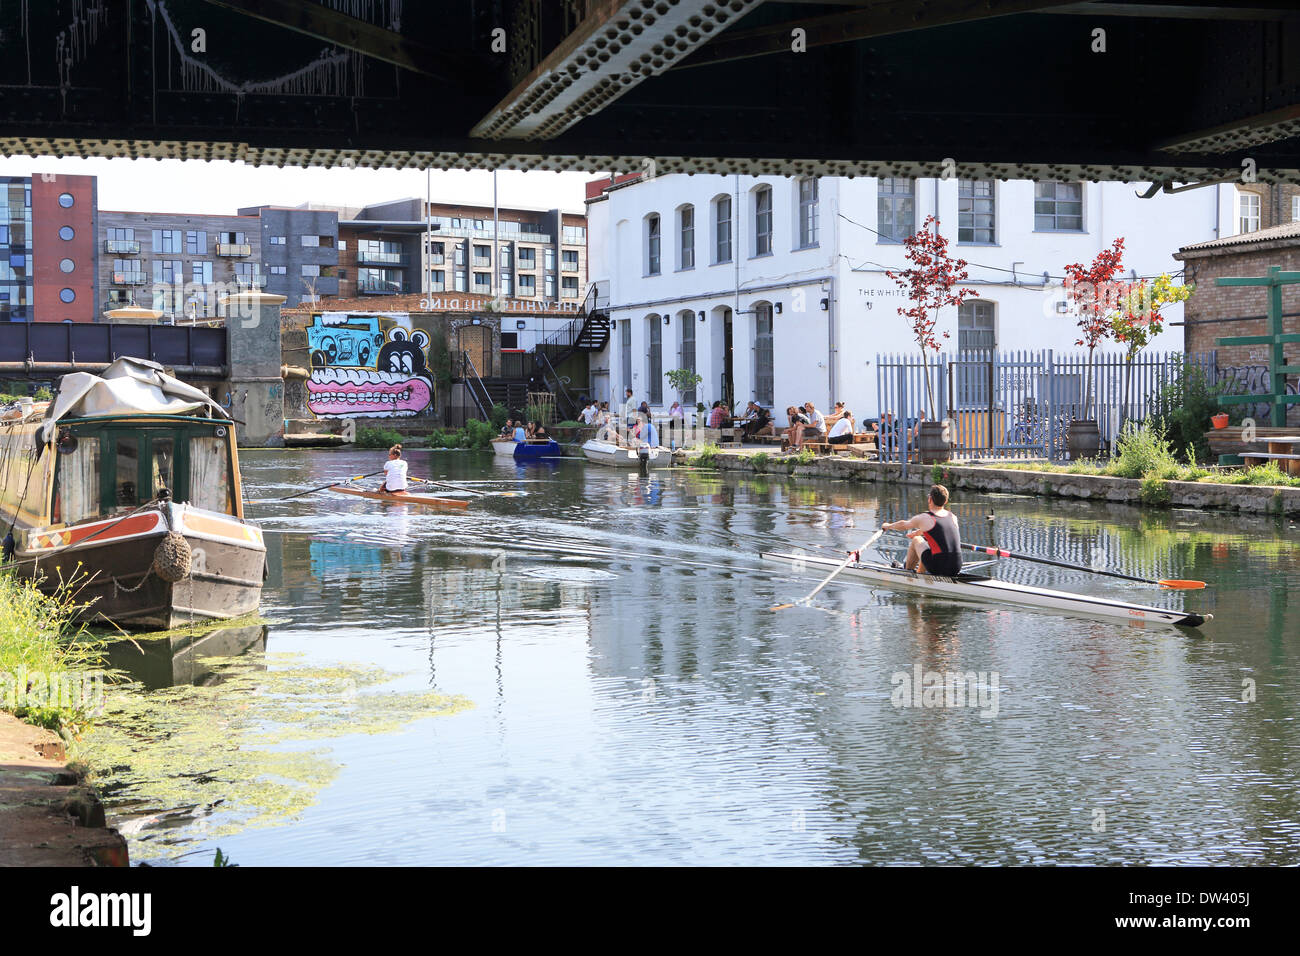 Rowing past the White Building, on the River Lee Navigation, next to White Post Lane, in Hackney Wick, in East London - Stock Image